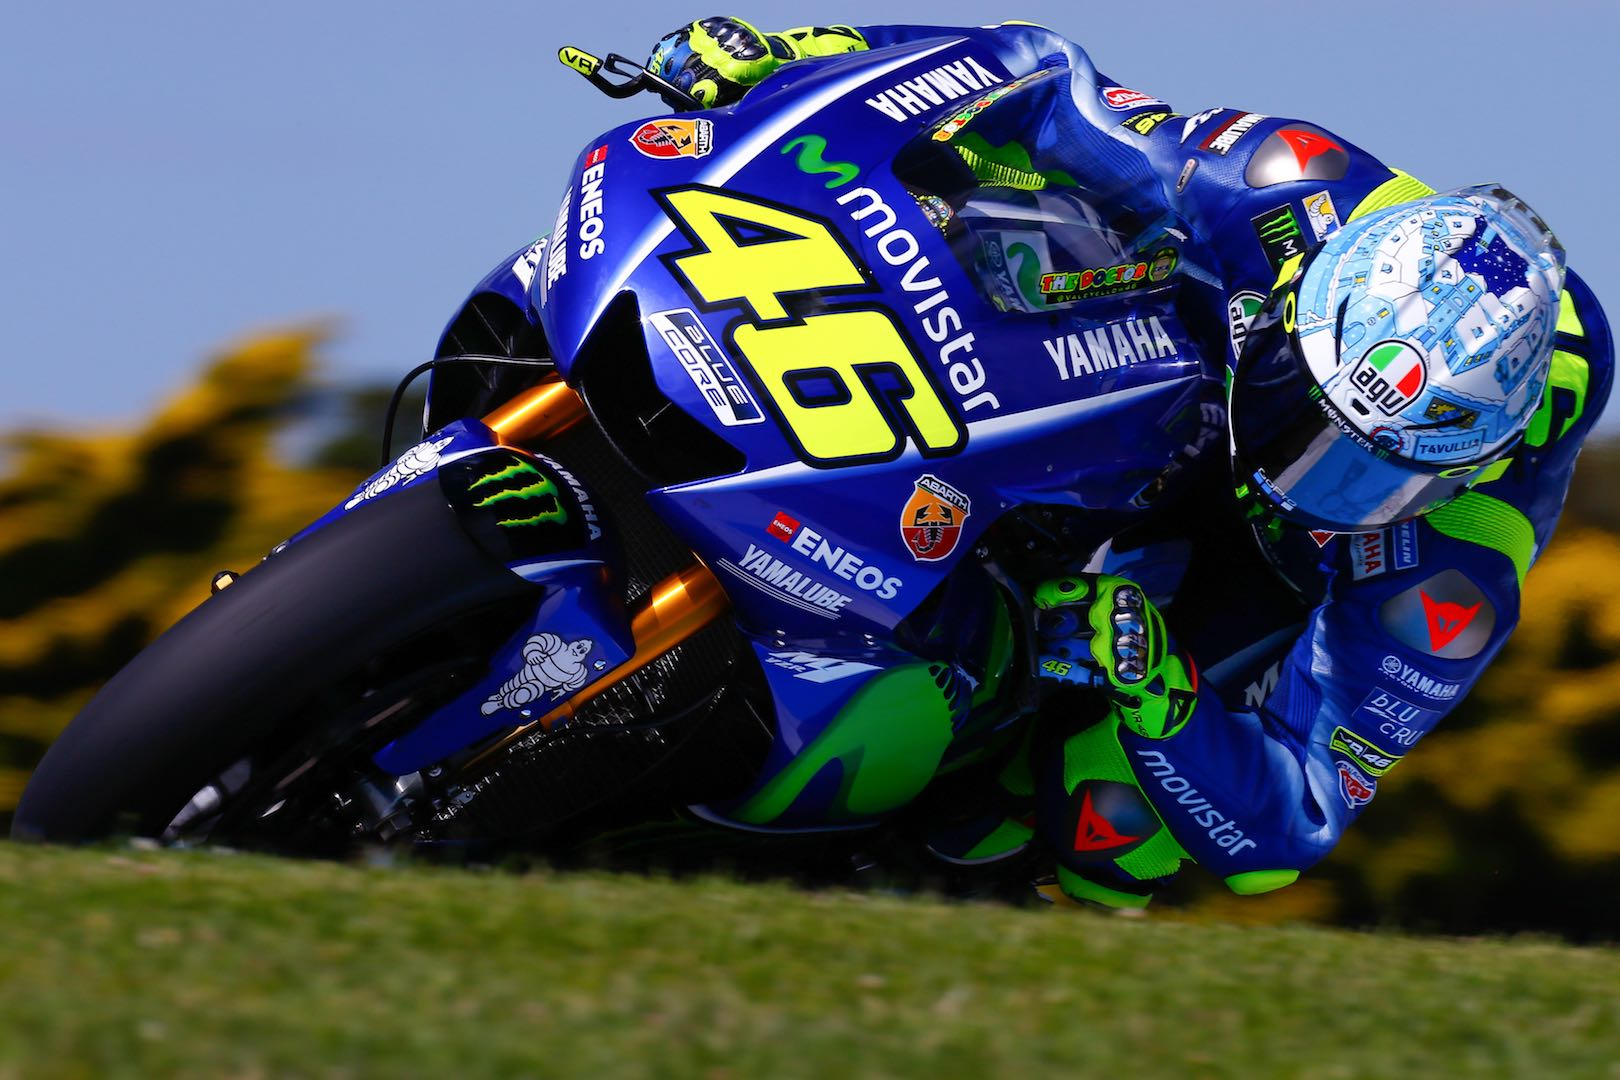 2018 MotoGP Preview Valentino Rossi